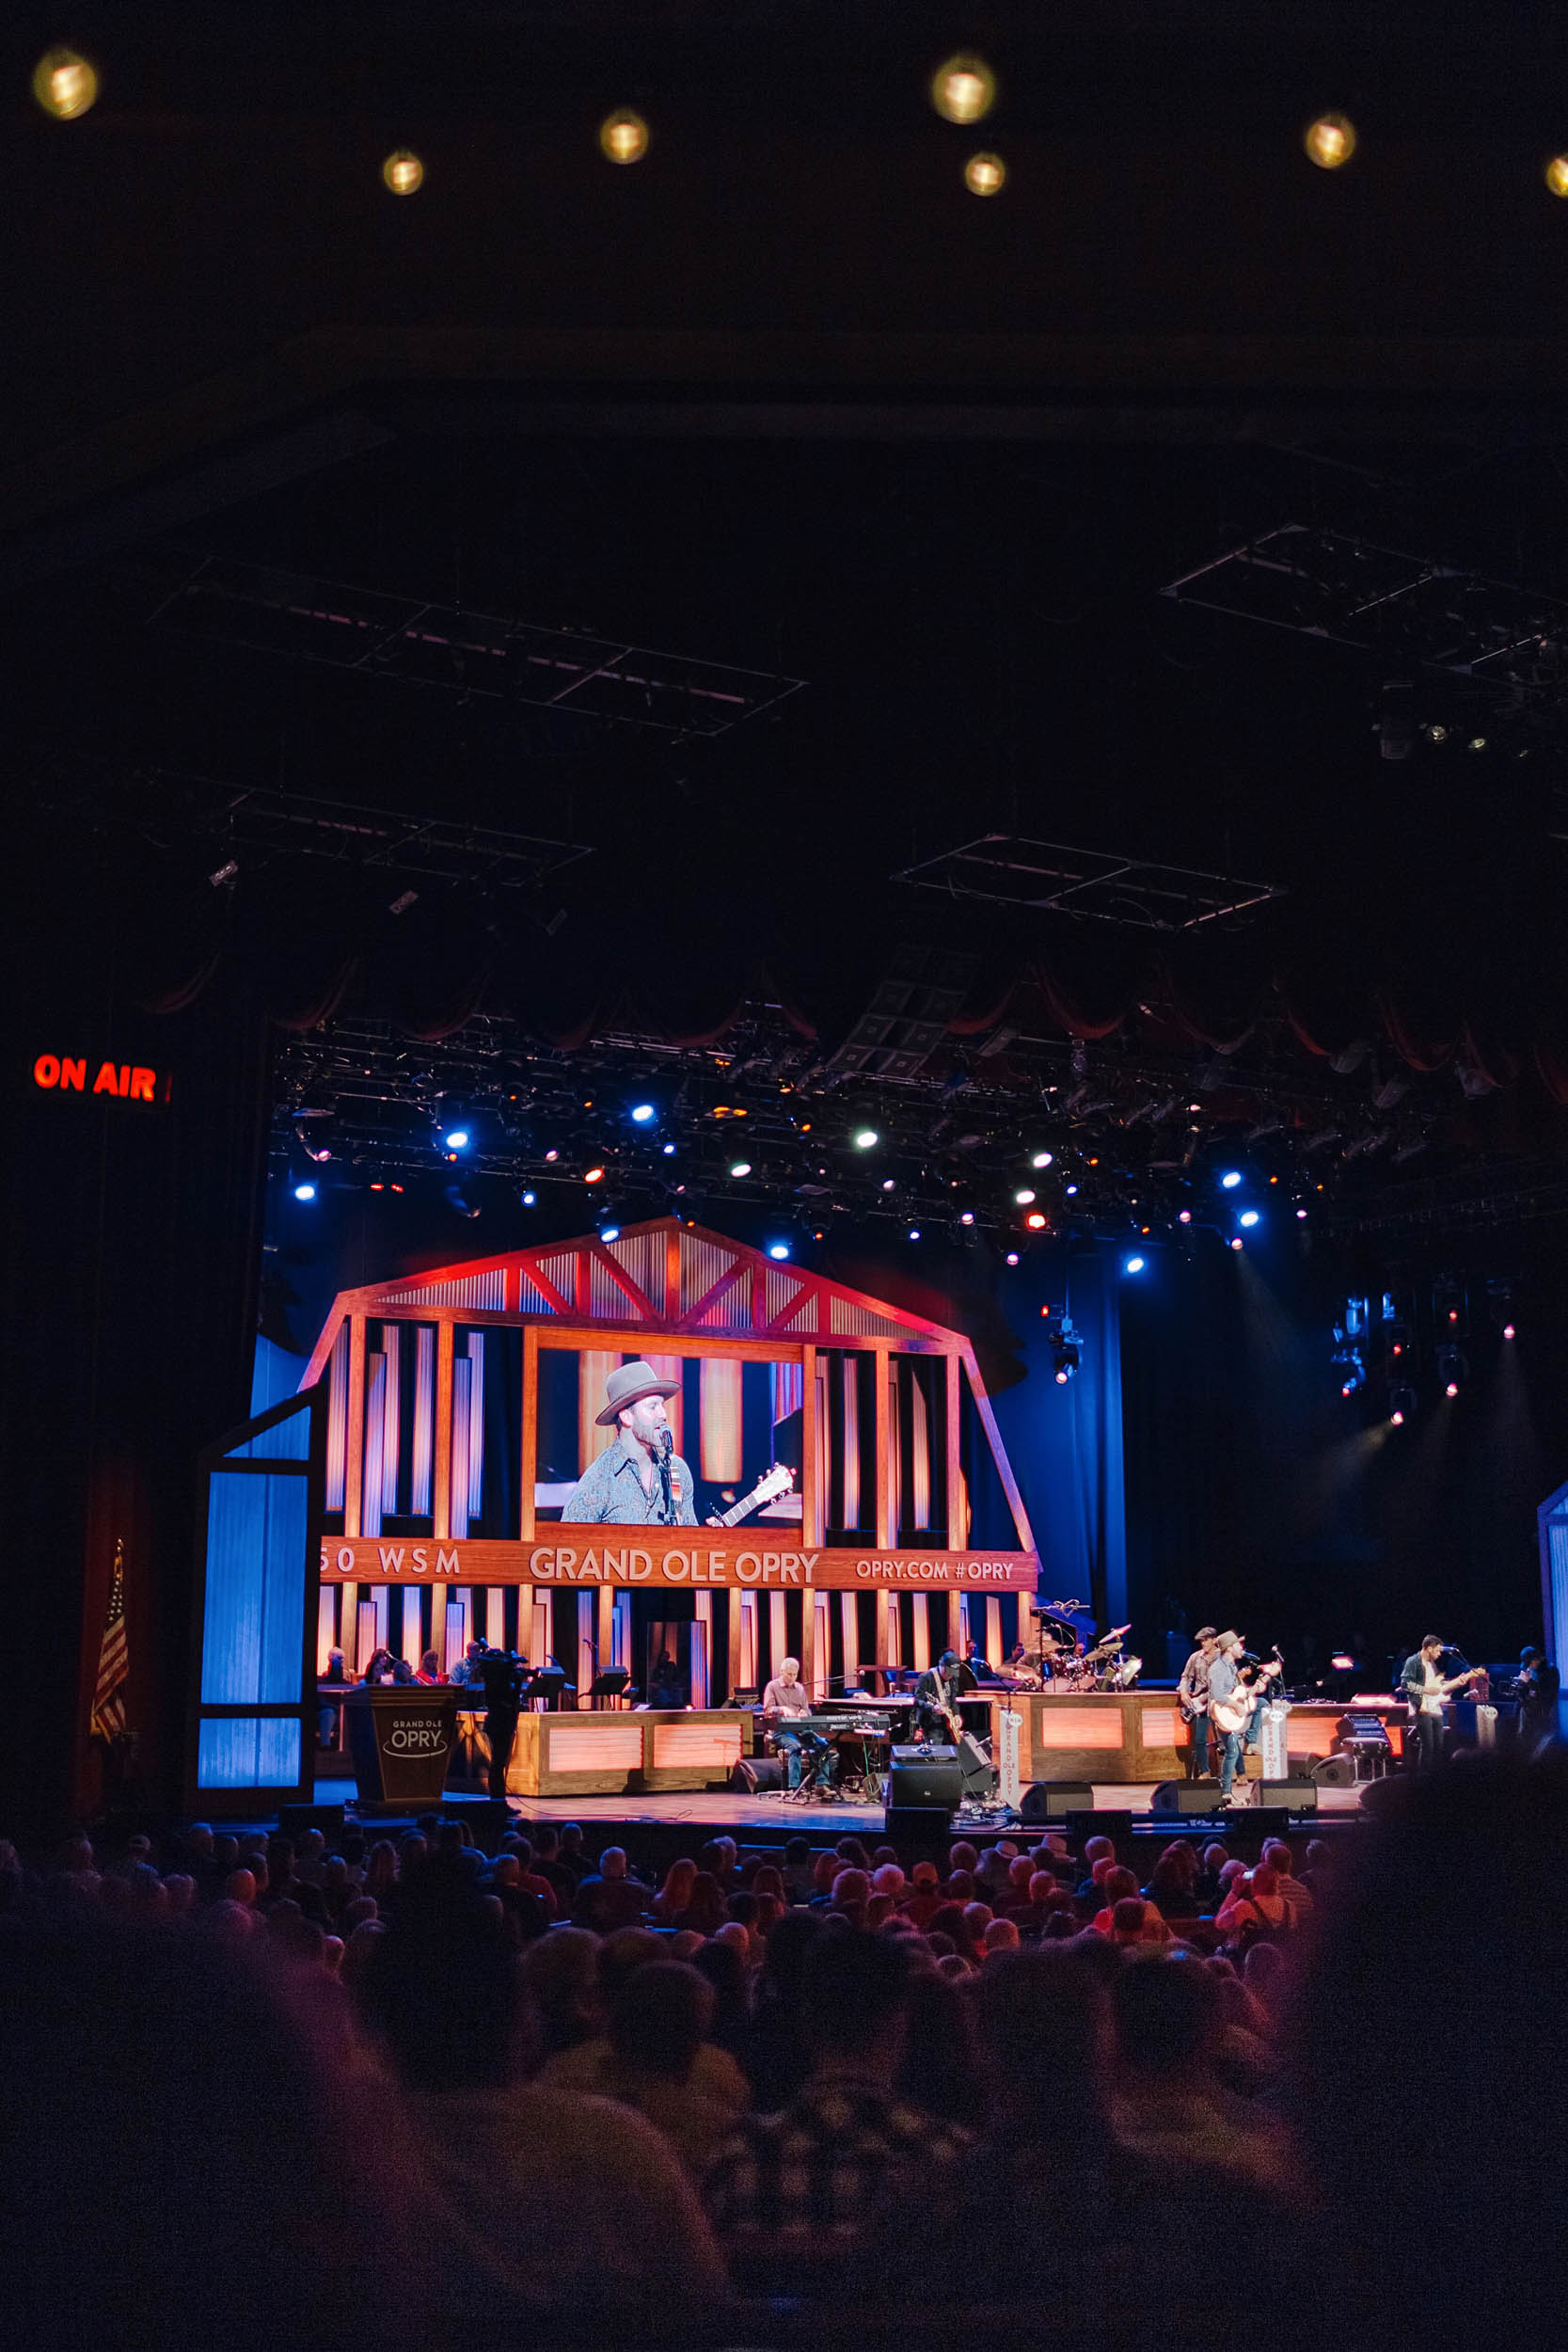 Drake White performing at the Grand Ole Opry